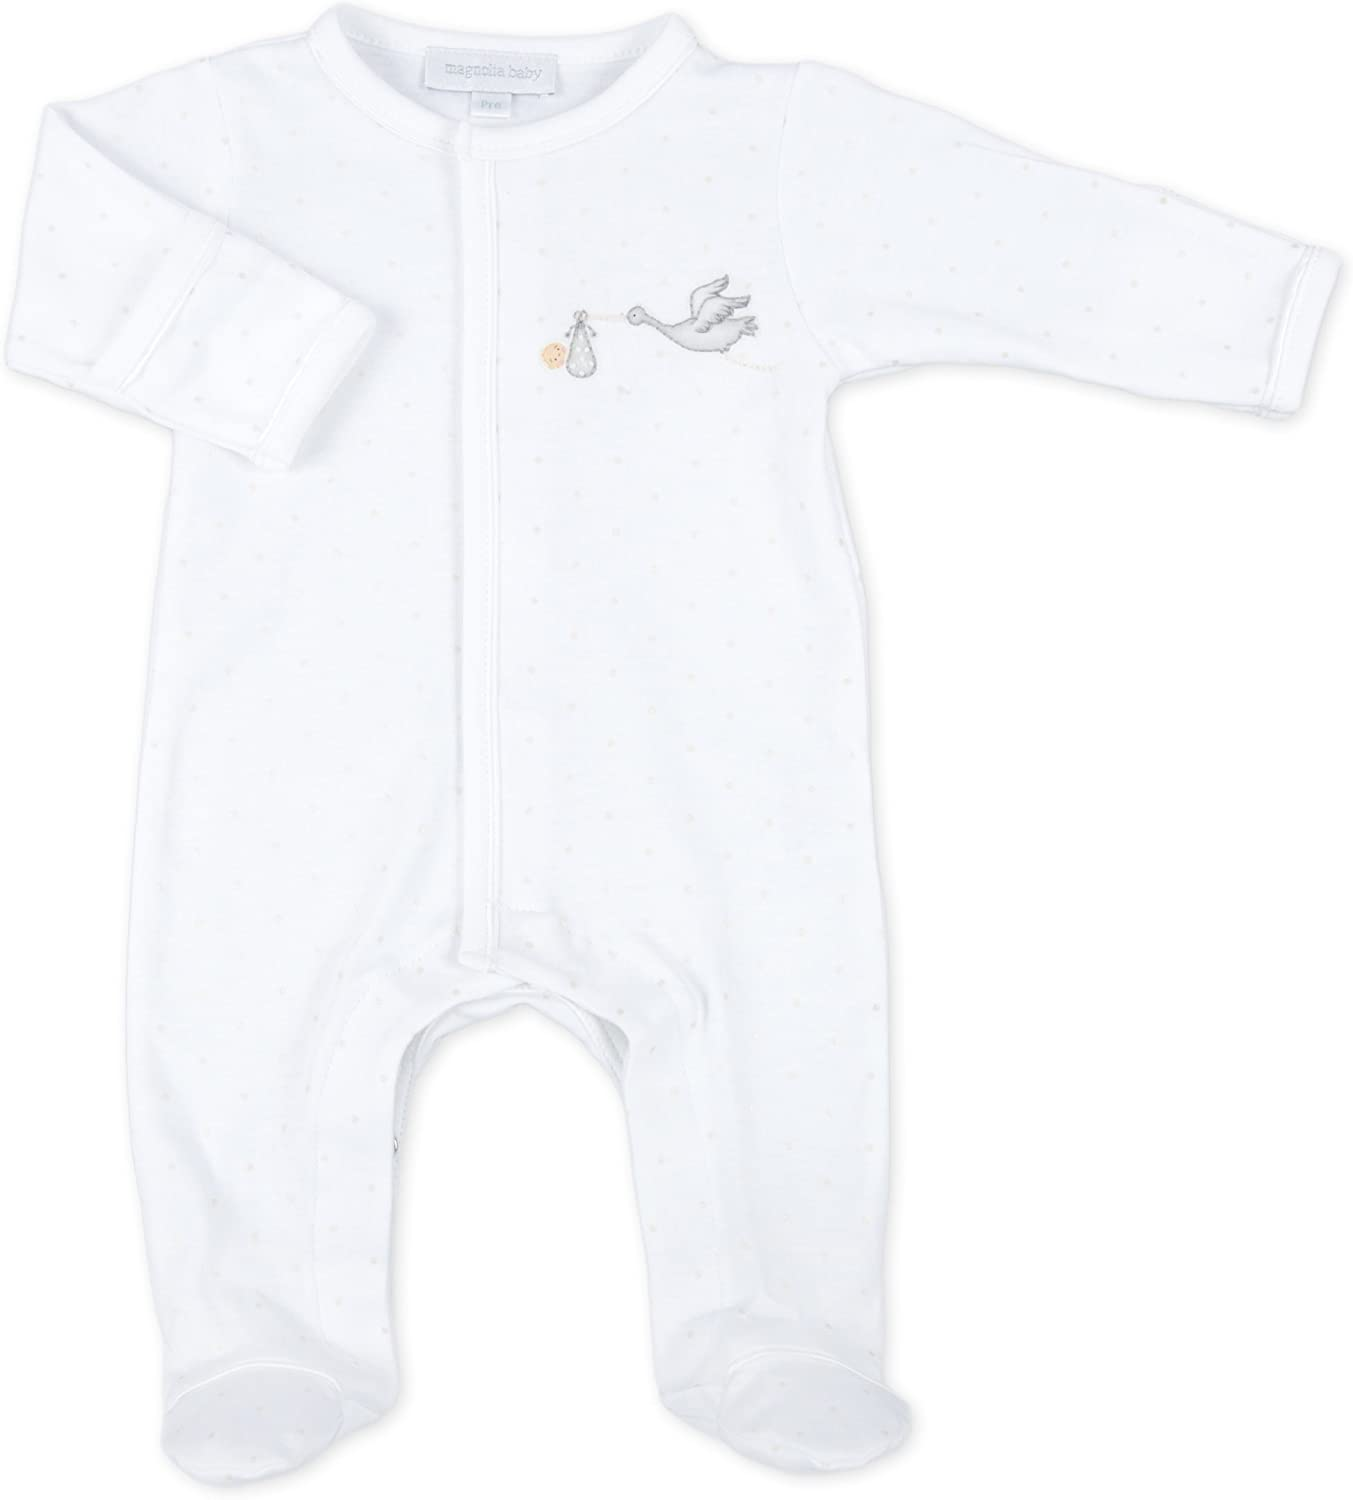 Magnolia Baby Unisex Baby Worth The Wait Essentials Embroidered Footie White